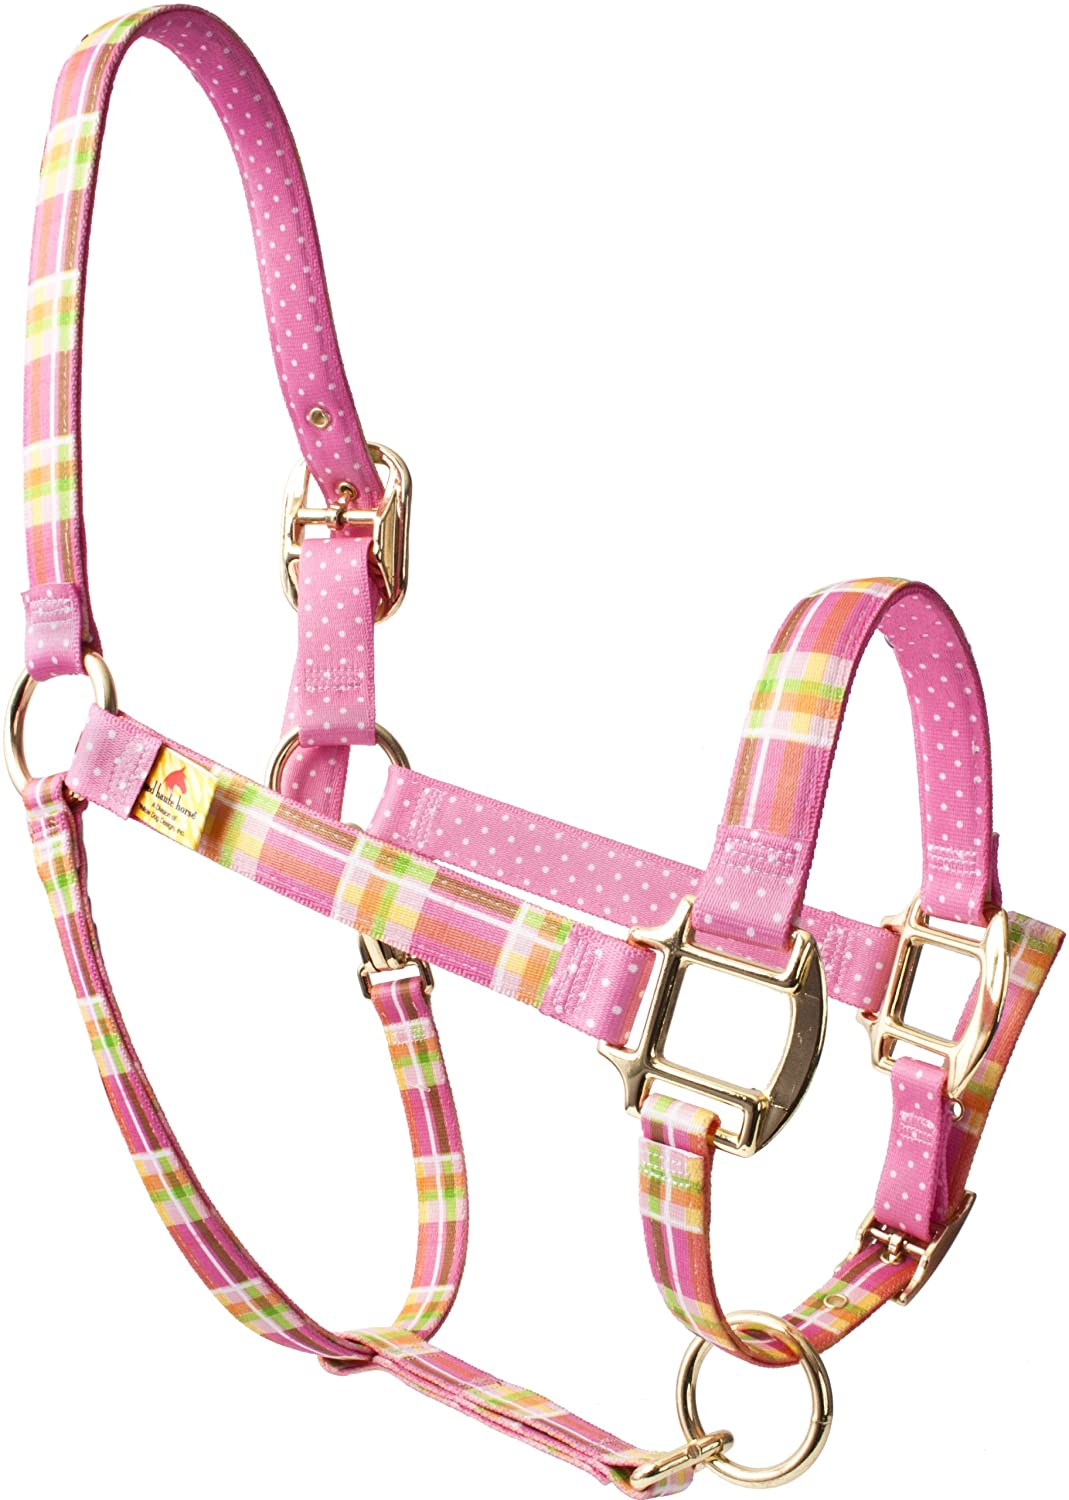 Red Haute Horse MDP1203A High Fashion Horse Horse Halter, Madras Pink